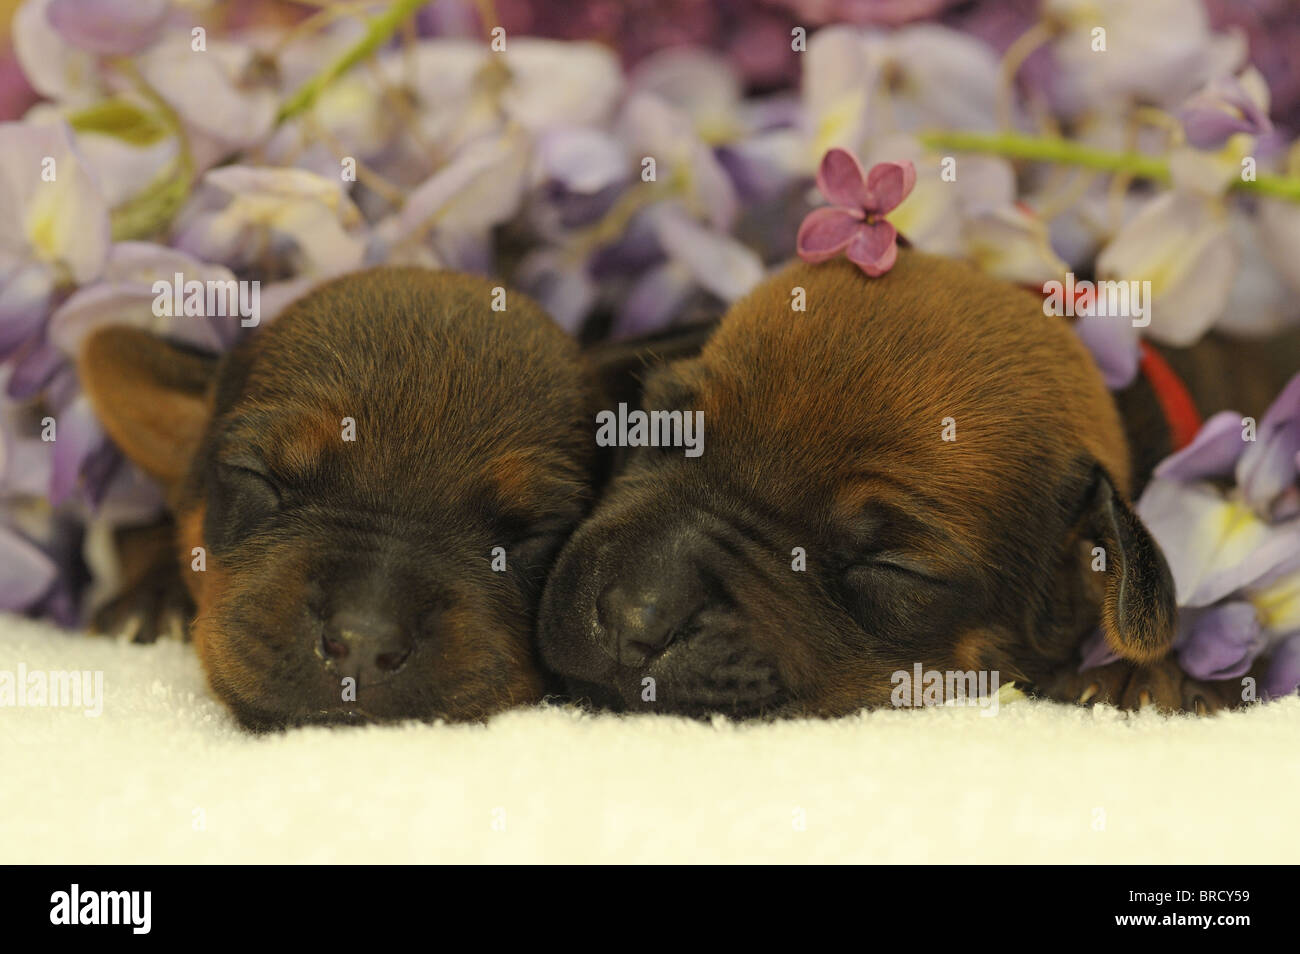 Rhodesian Ridgeback (Canis lupus familiaris). Two puppies sleeping next to Lilacflowers. - Stock Image